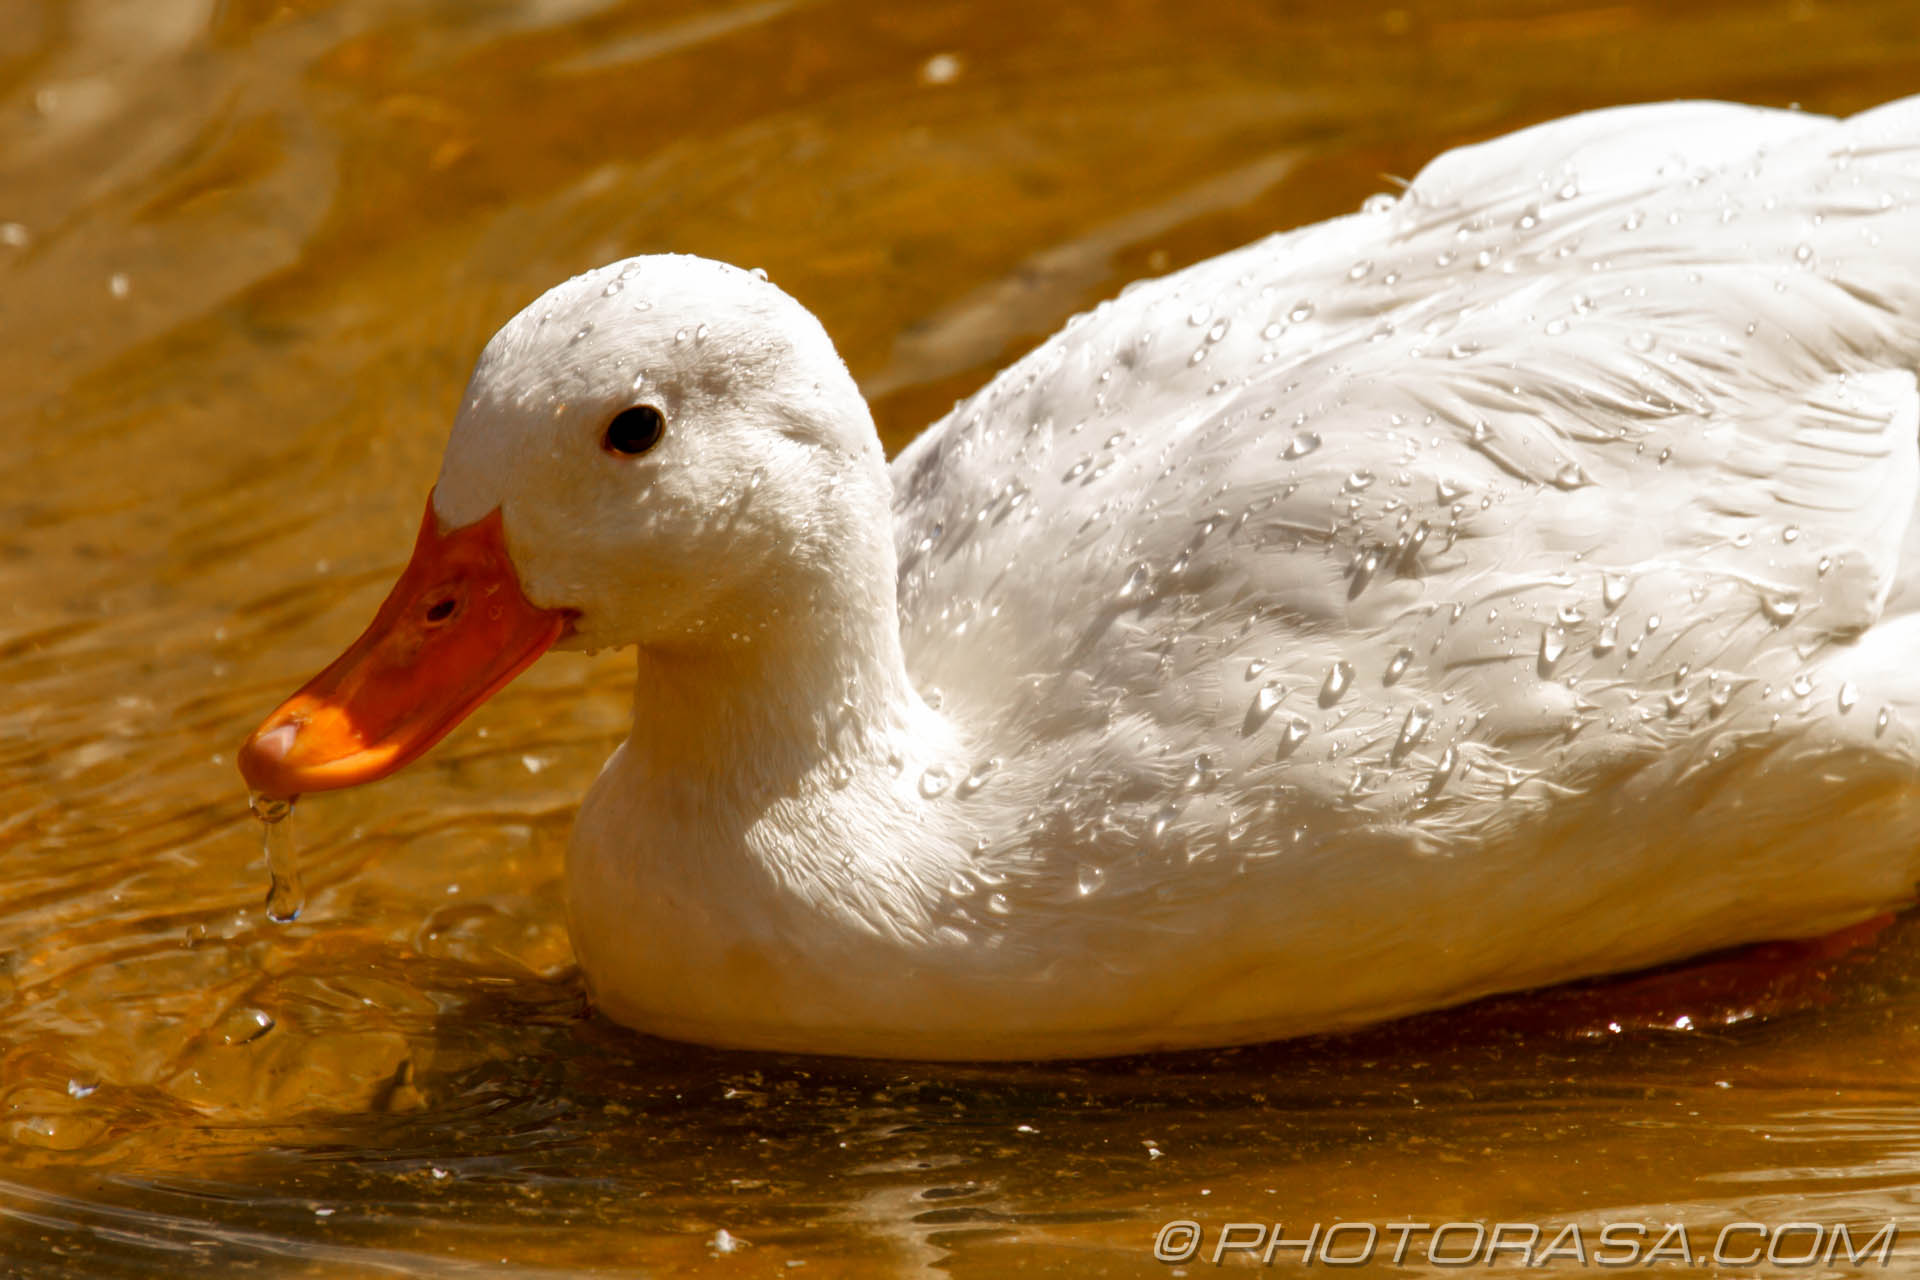 http://photorasa.com/birds-greenworld/white-duck-and-water-droplets/